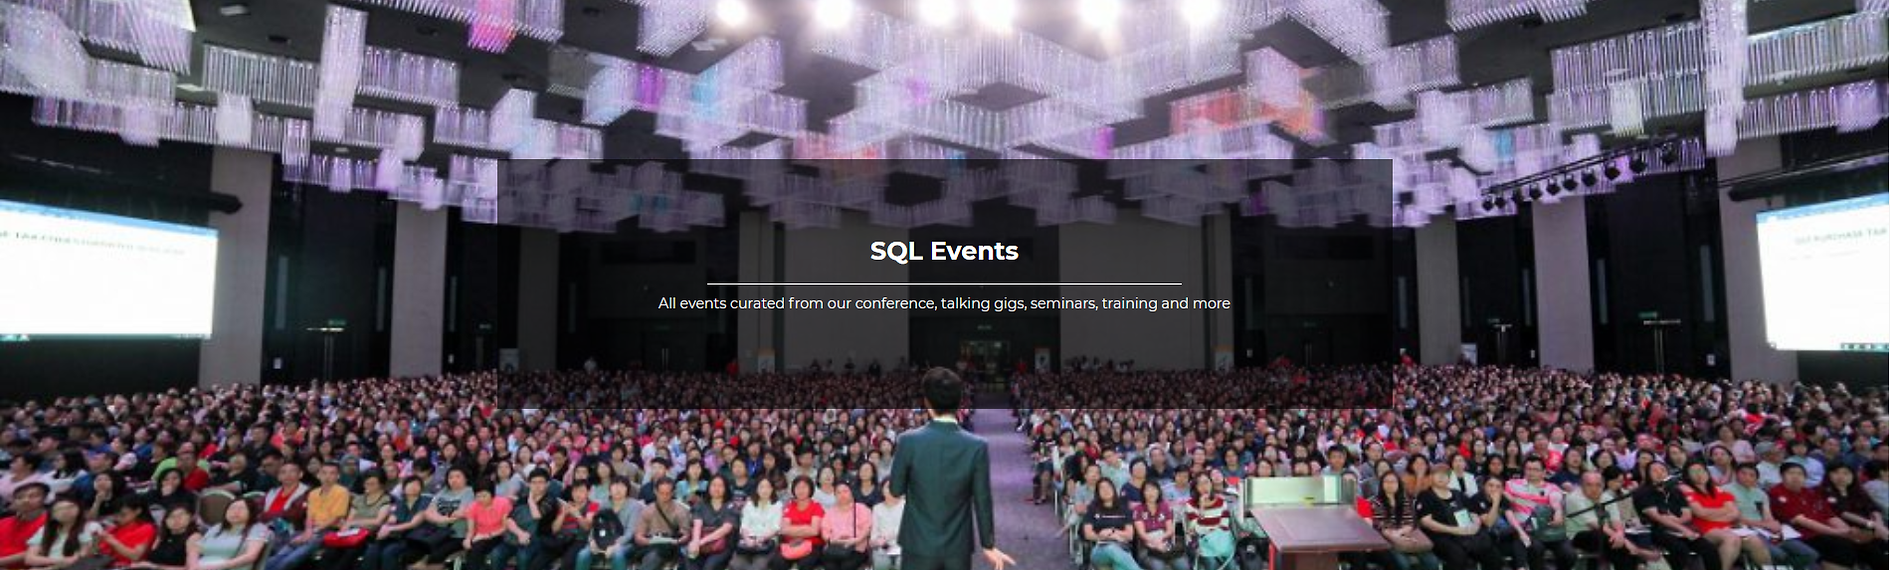 sql-events.png